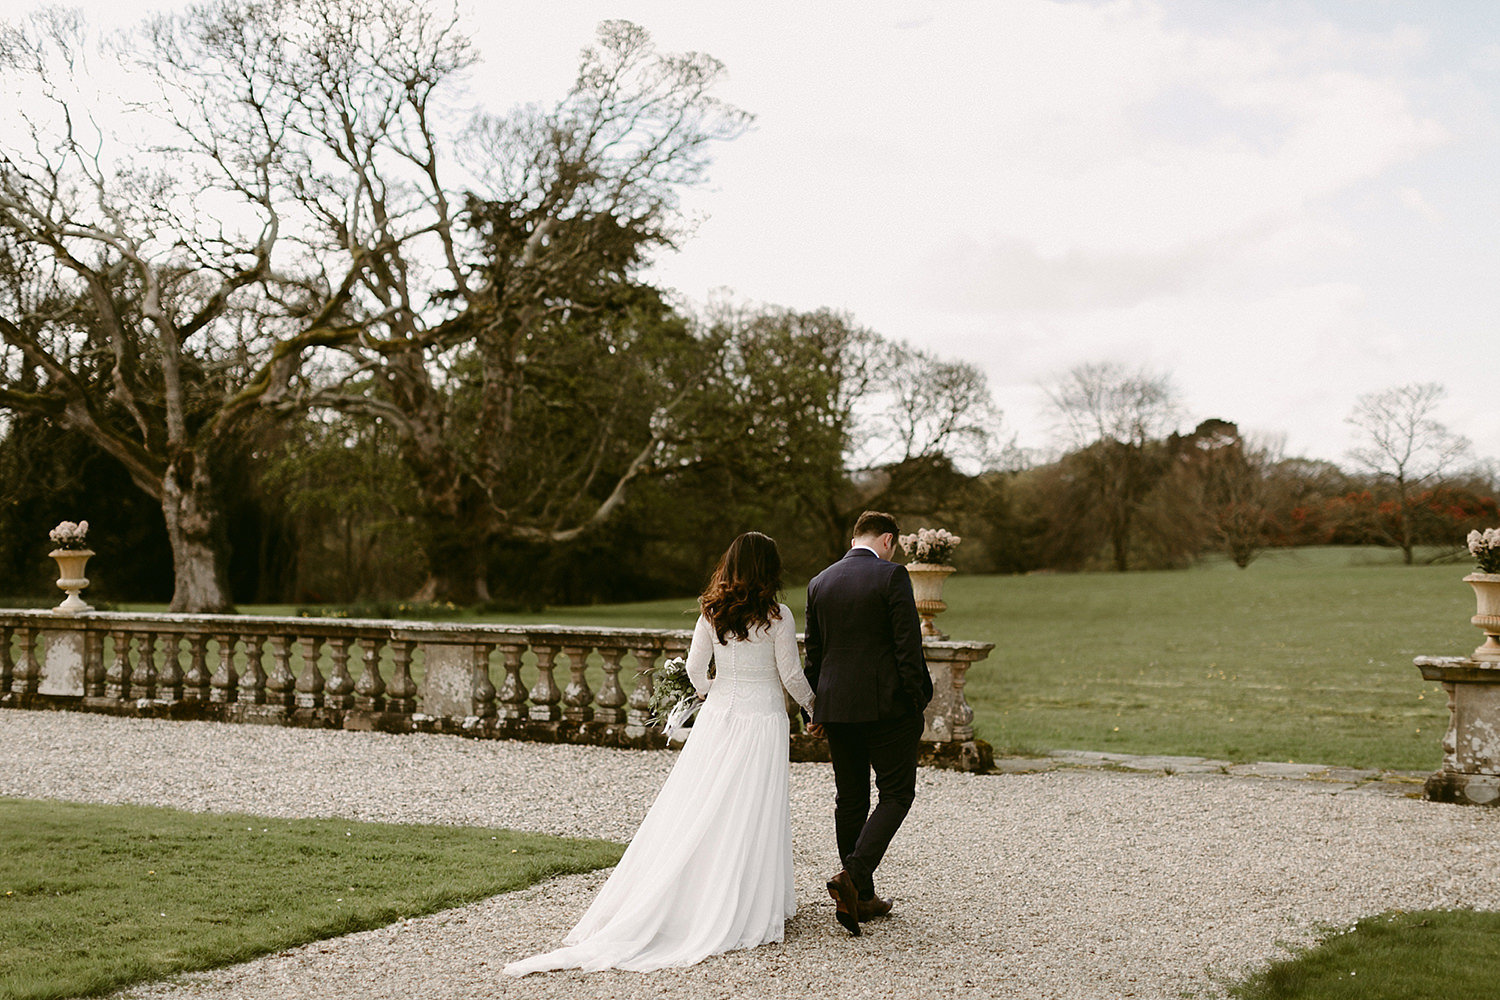 Northern Ireland Wedding Photographers Adam & Grace 5183